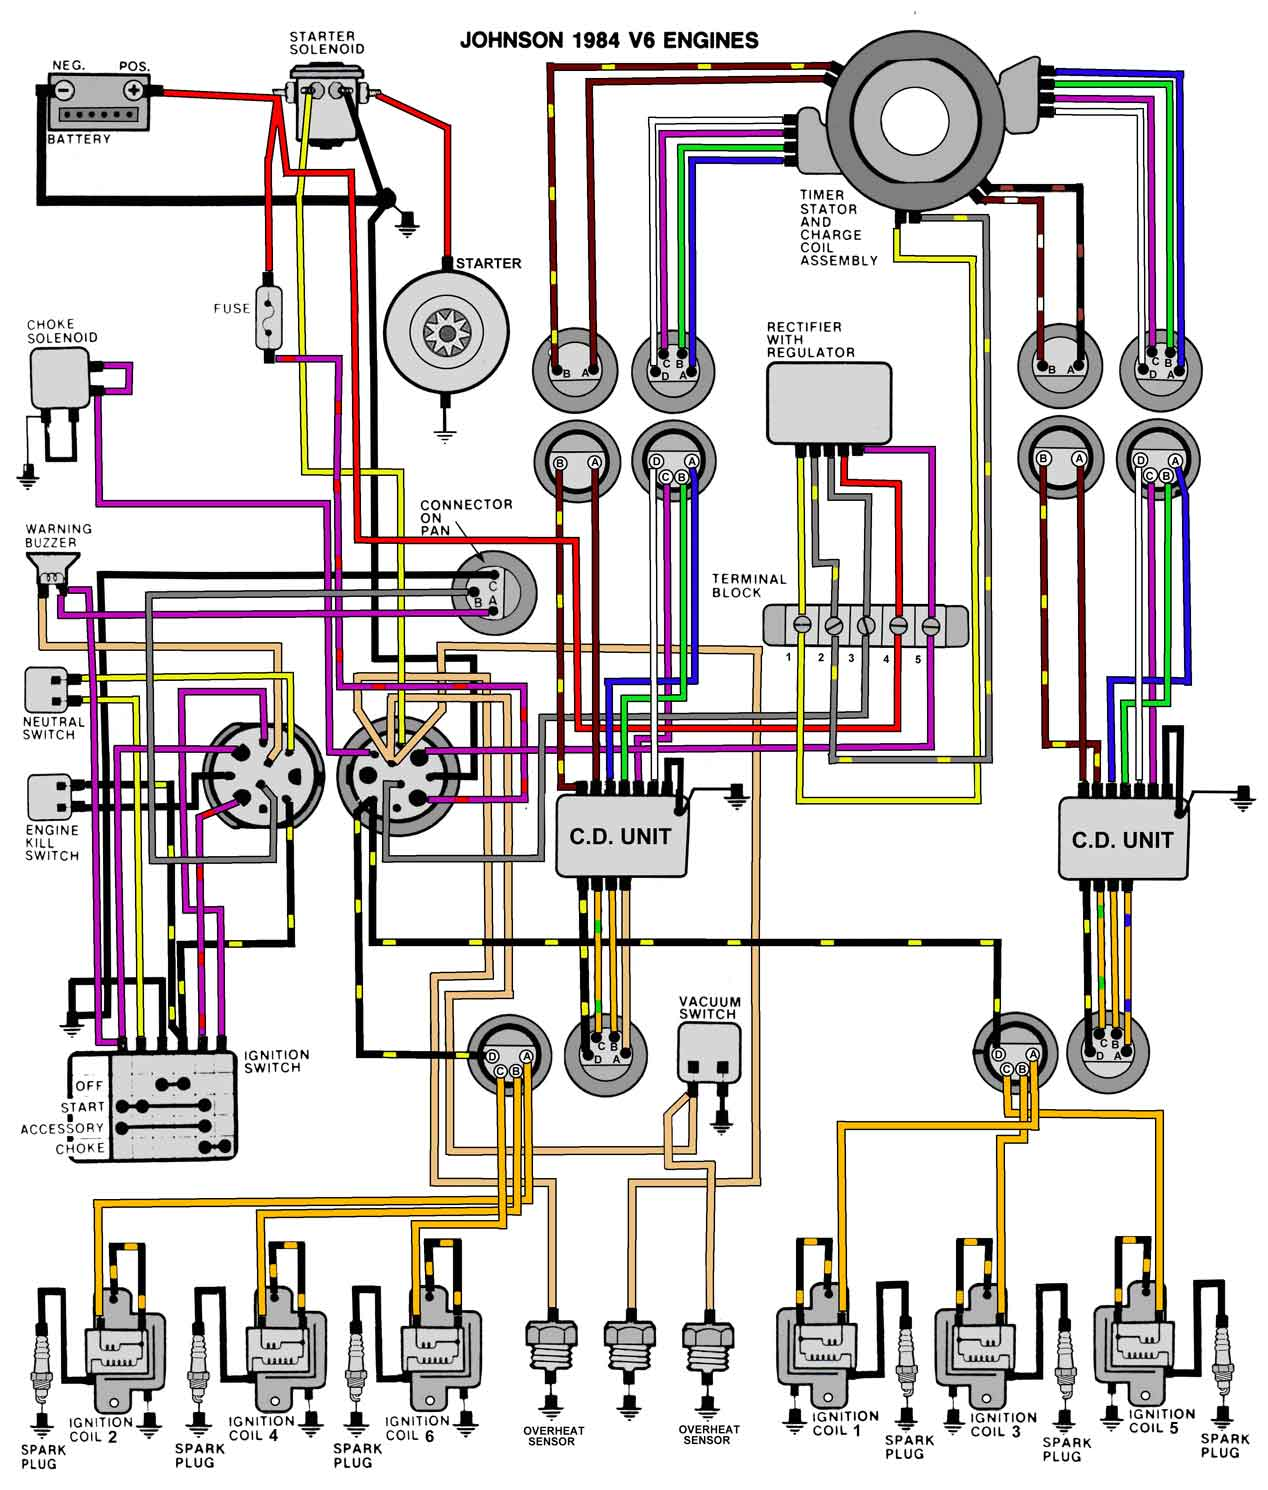 84_V6 mastertech marine evinrude johnson outboard wiring diagrams Yamaha Outboard Schematic Diagram at pacquiaovsvargaslive.co